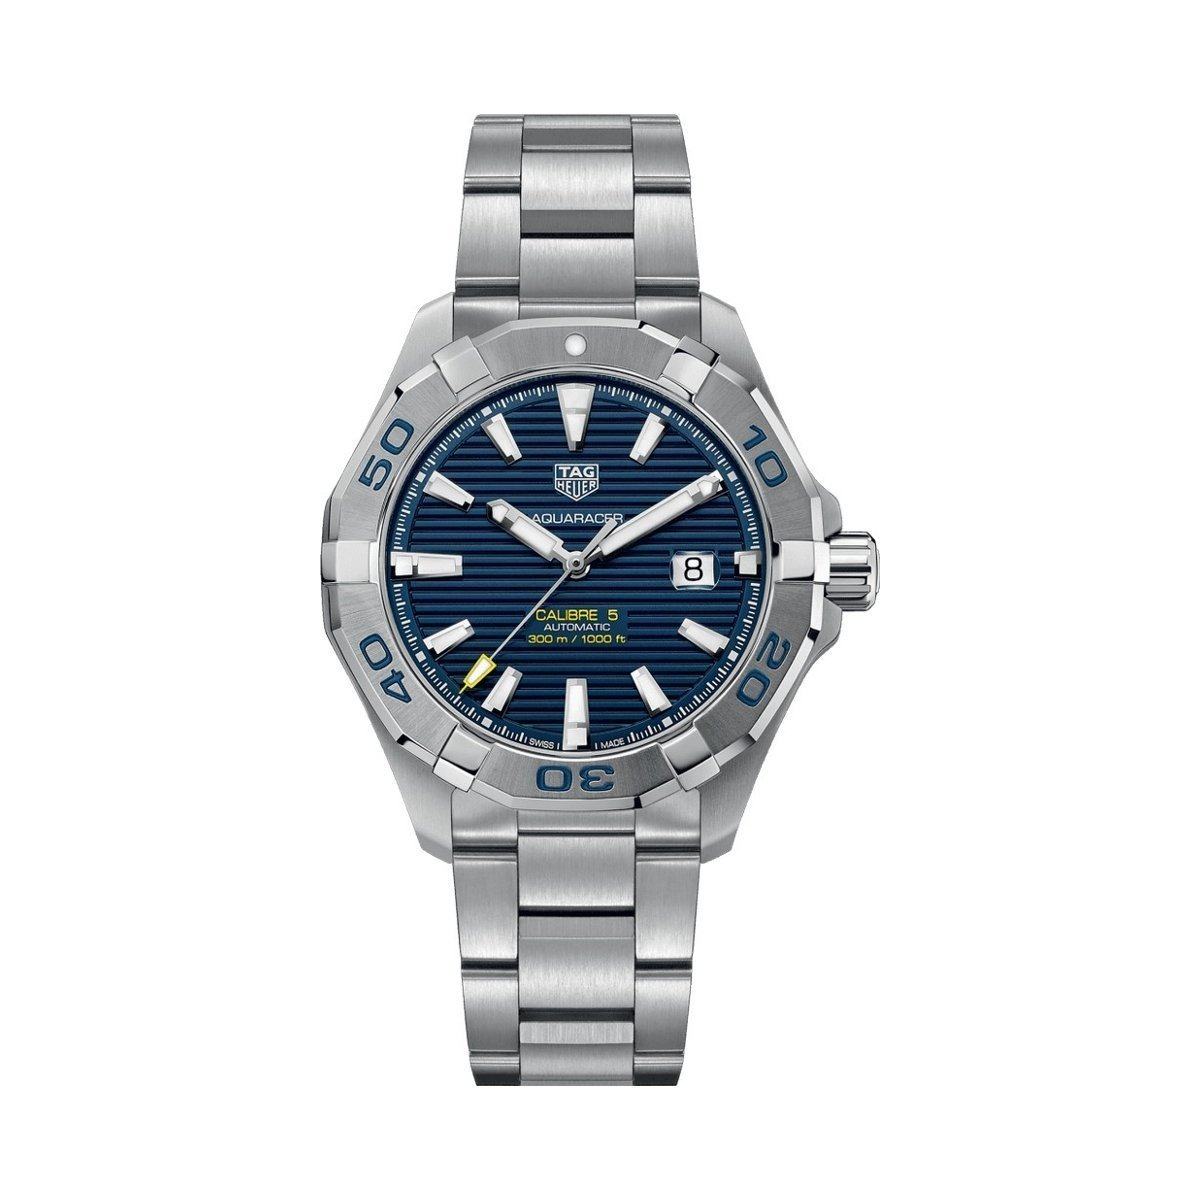 Montre TAG Heuer Aquaracer Calibre 5 Automatique vue 1